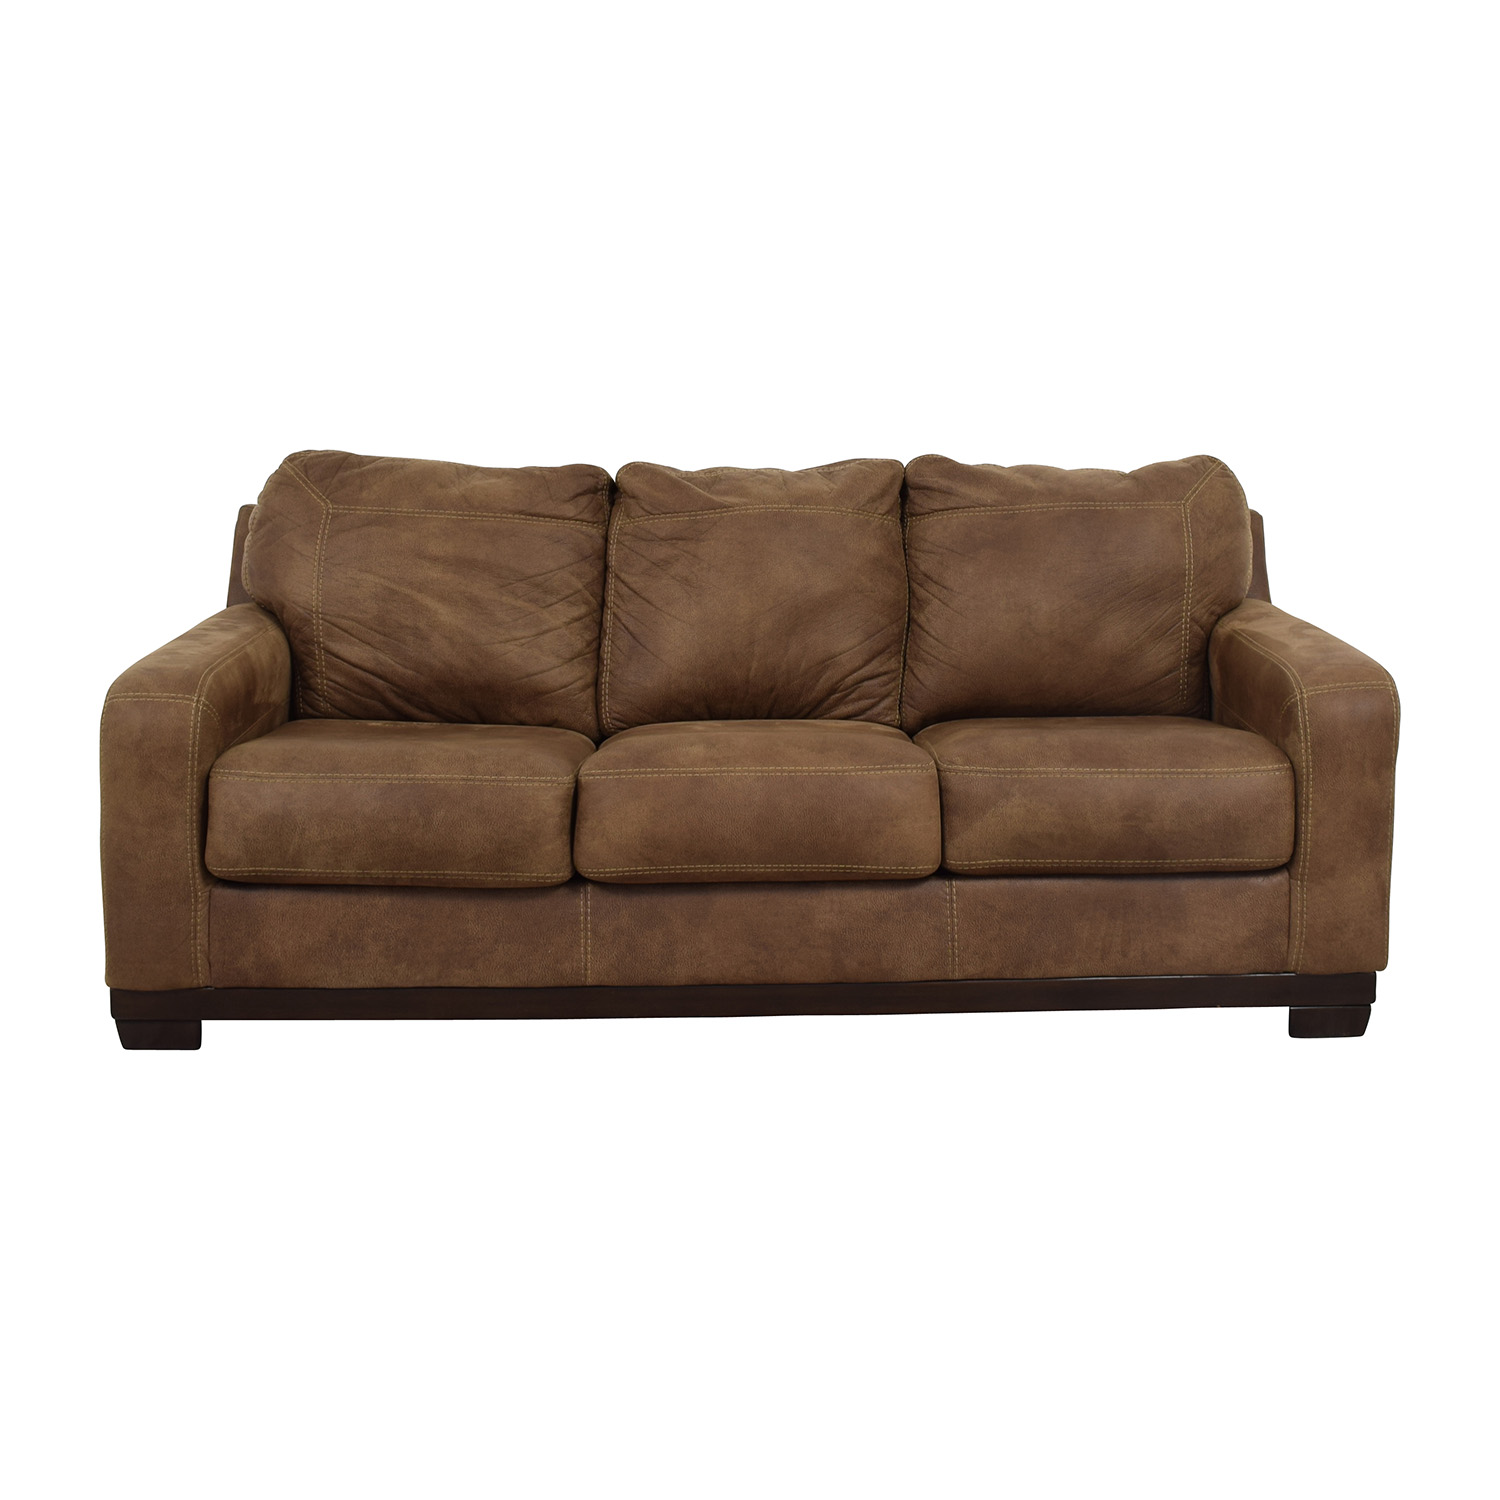 Ashley Furniture Kylun Brown Three-Cushion Couch / Sofas